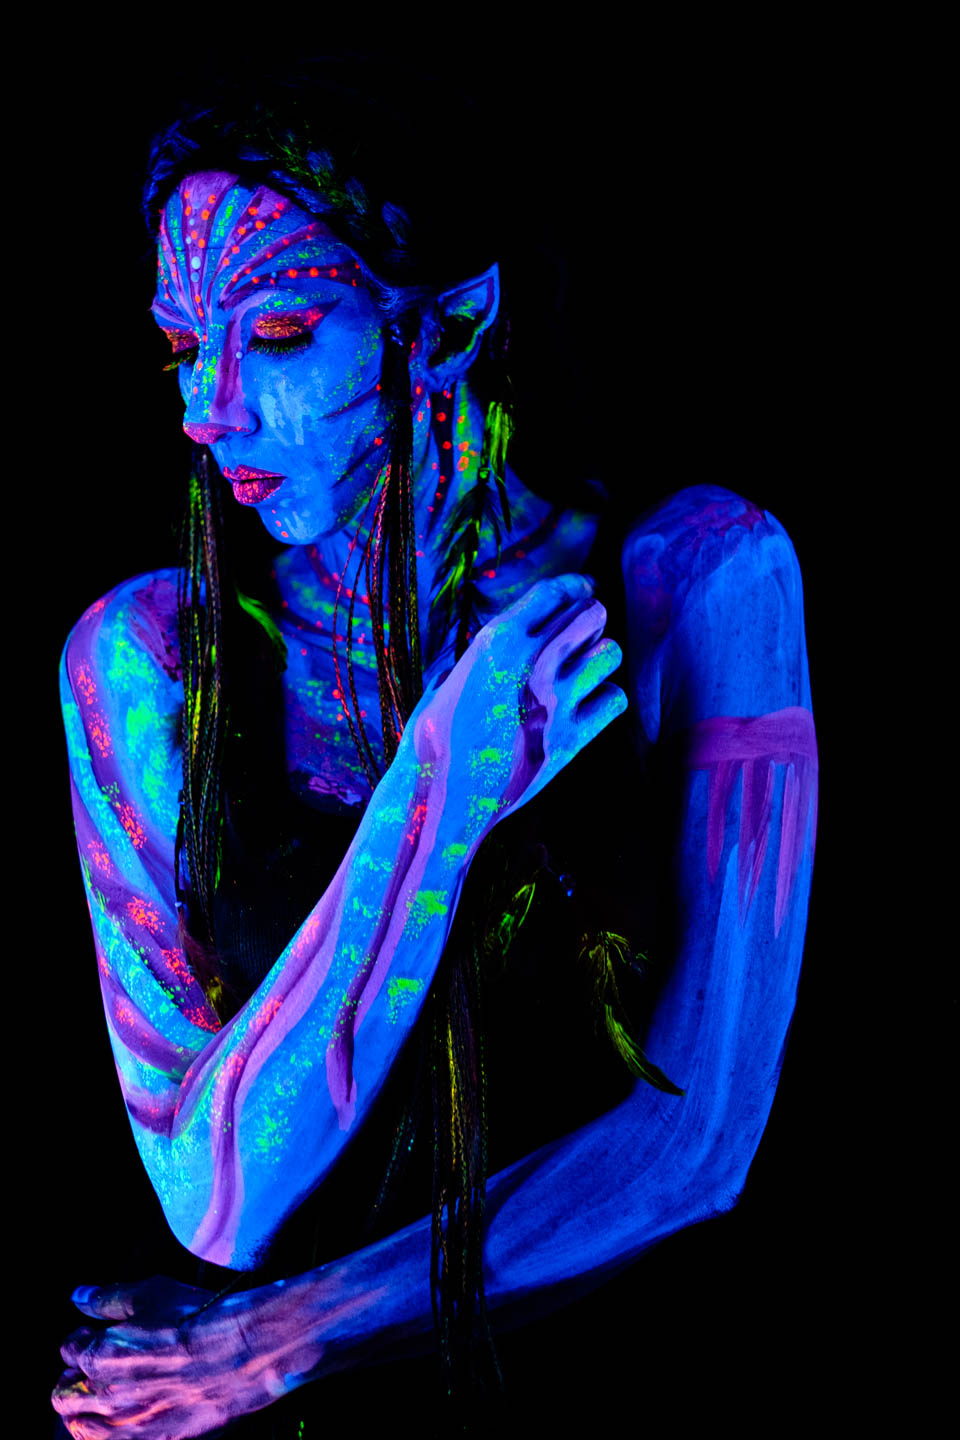 Avatar themed paint and model under blacklight